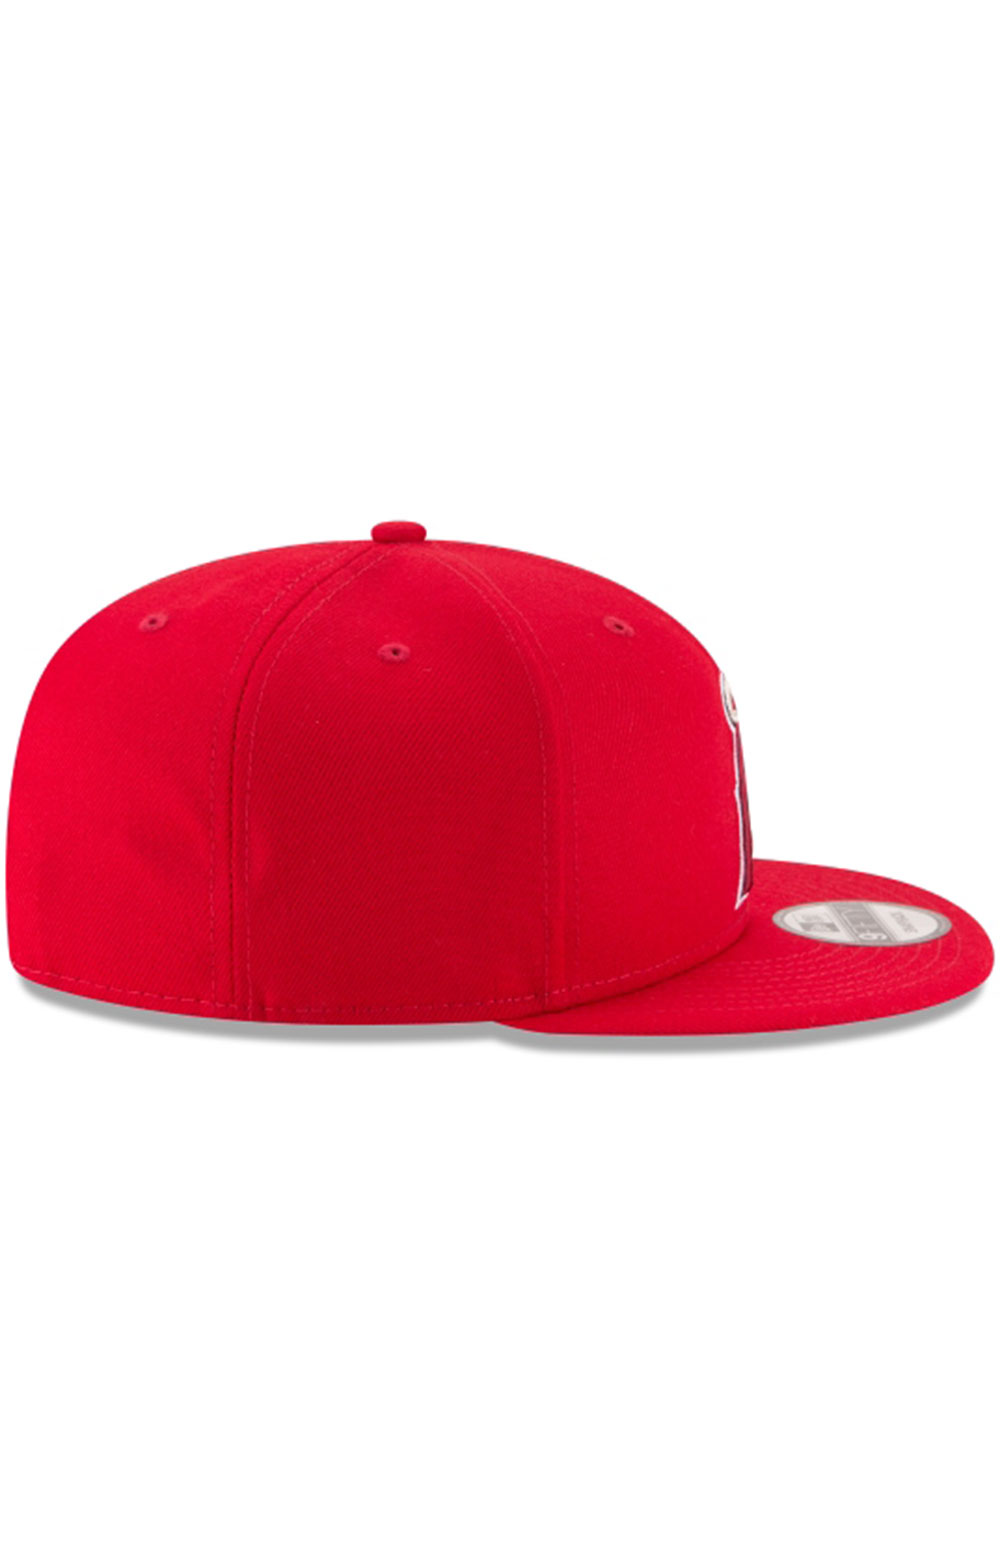 Los Angeles Angels Team Color Basic 9Fifty Snap-Back Hat  2